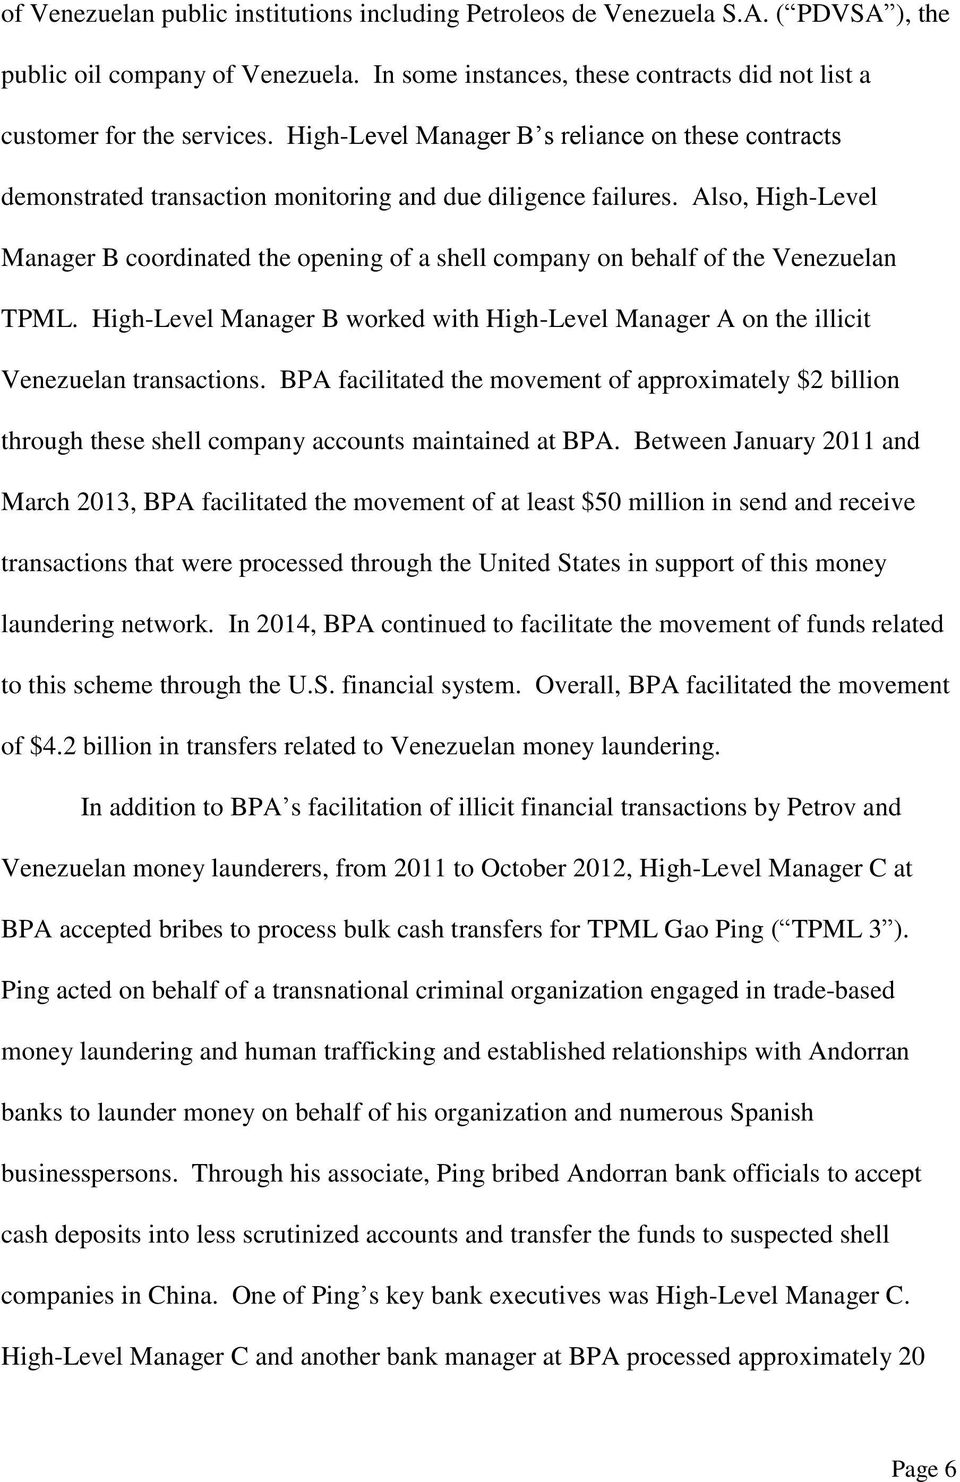 Also, High-Level Manager B coordinated the opening of a shell company on behalf of the Venezuelan TPML. High-Level Manager B worked with High-Level Manager A on the illicit Venezuelan transactions.